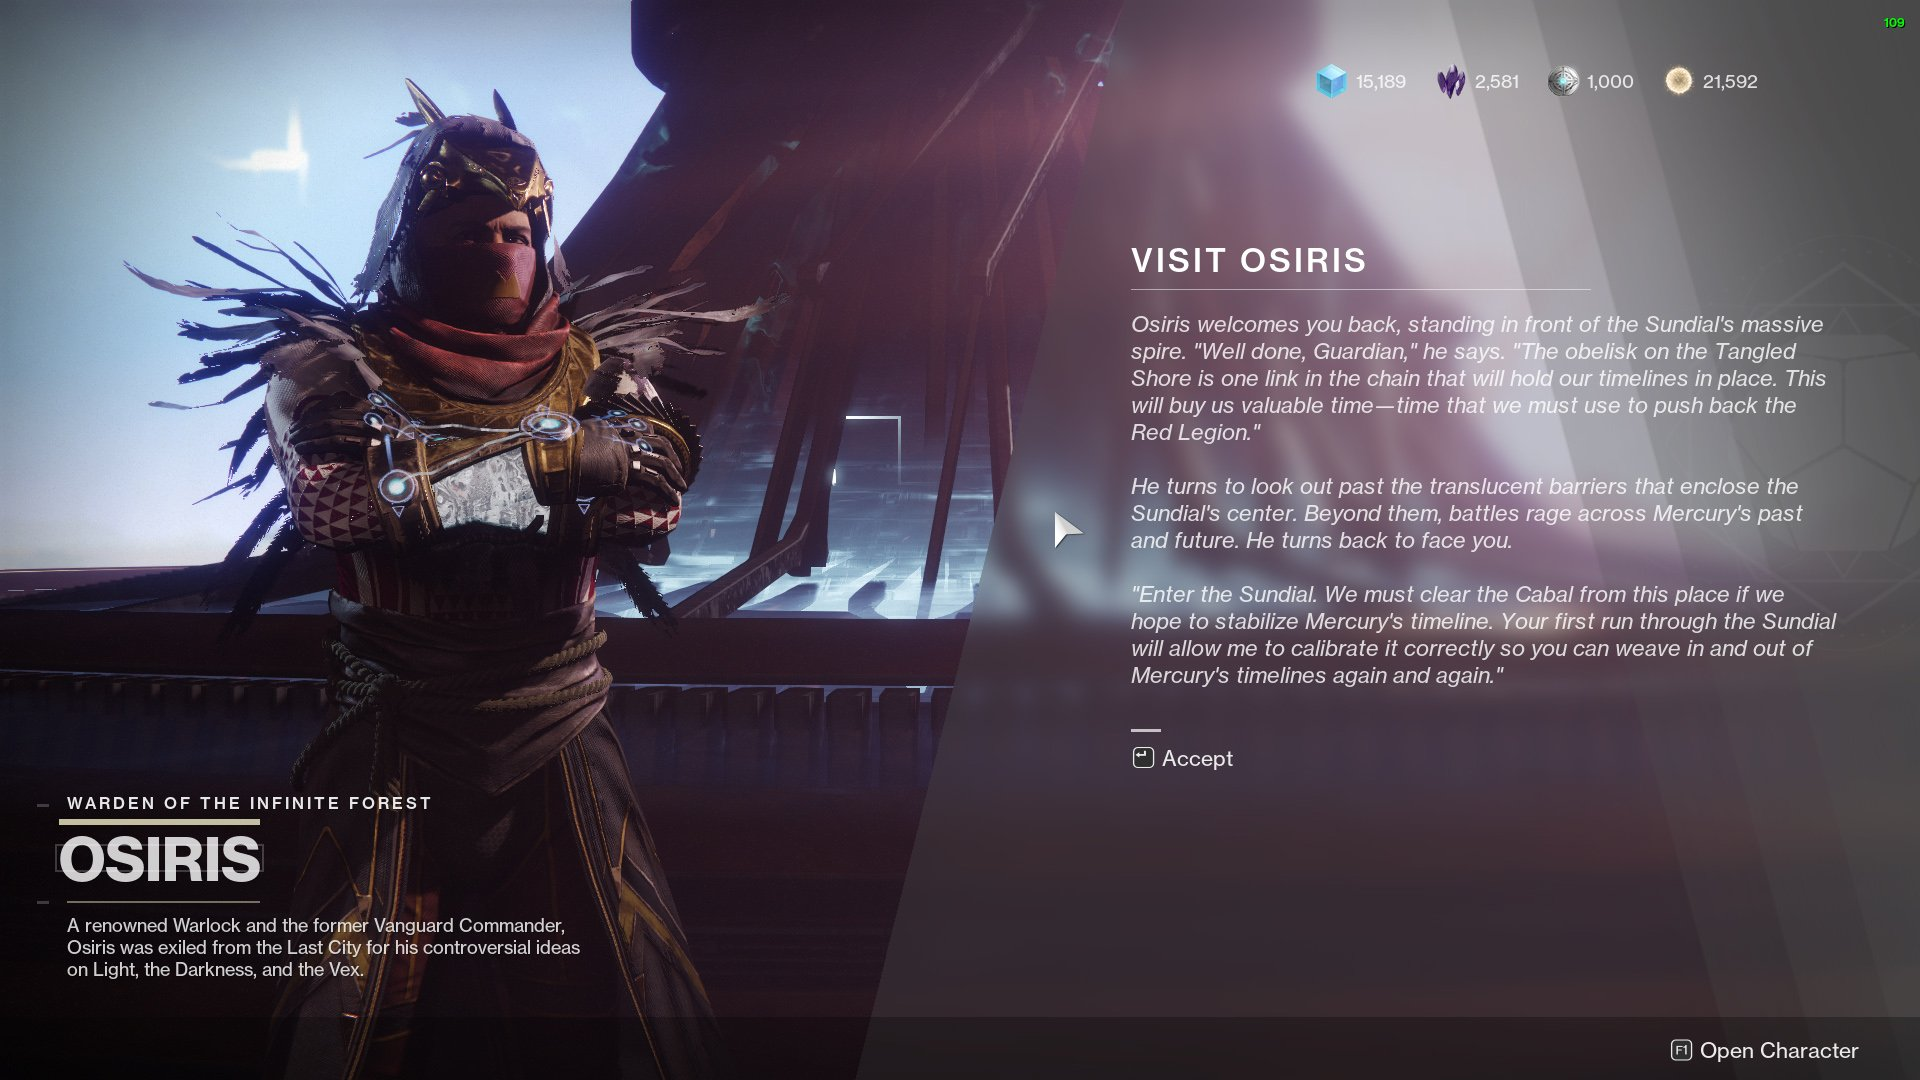 Destiny 2 visit osiris season of dawn